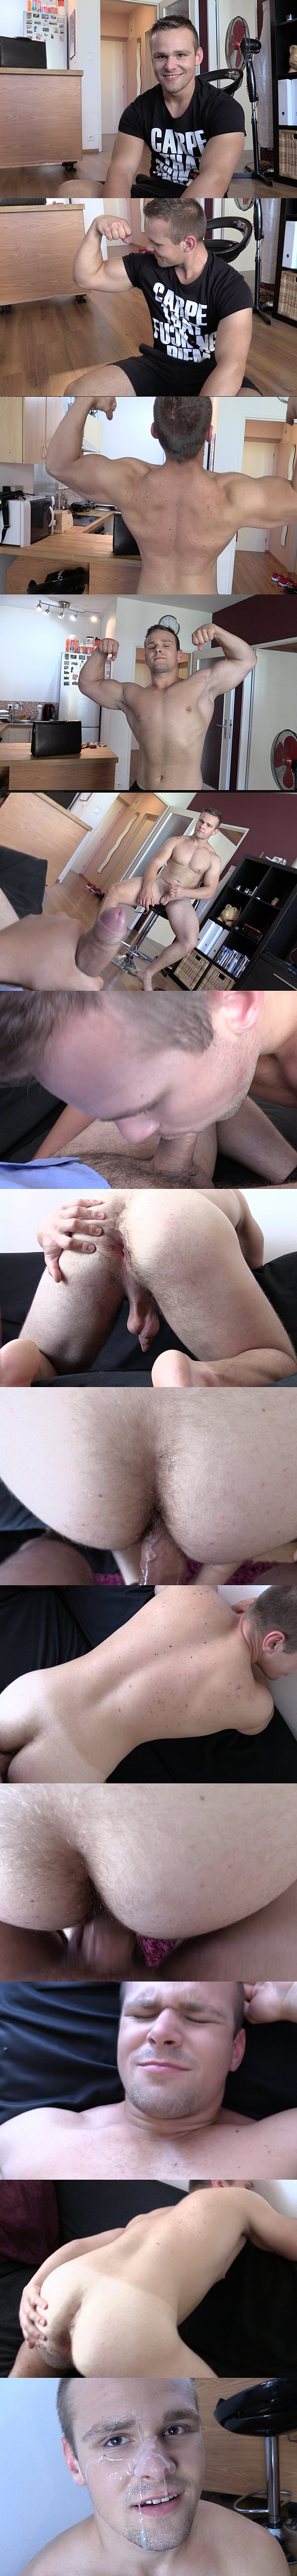 The cameraman barebacks an athletic jock's tight ass in Debt Dandy 157 at Debtdandy